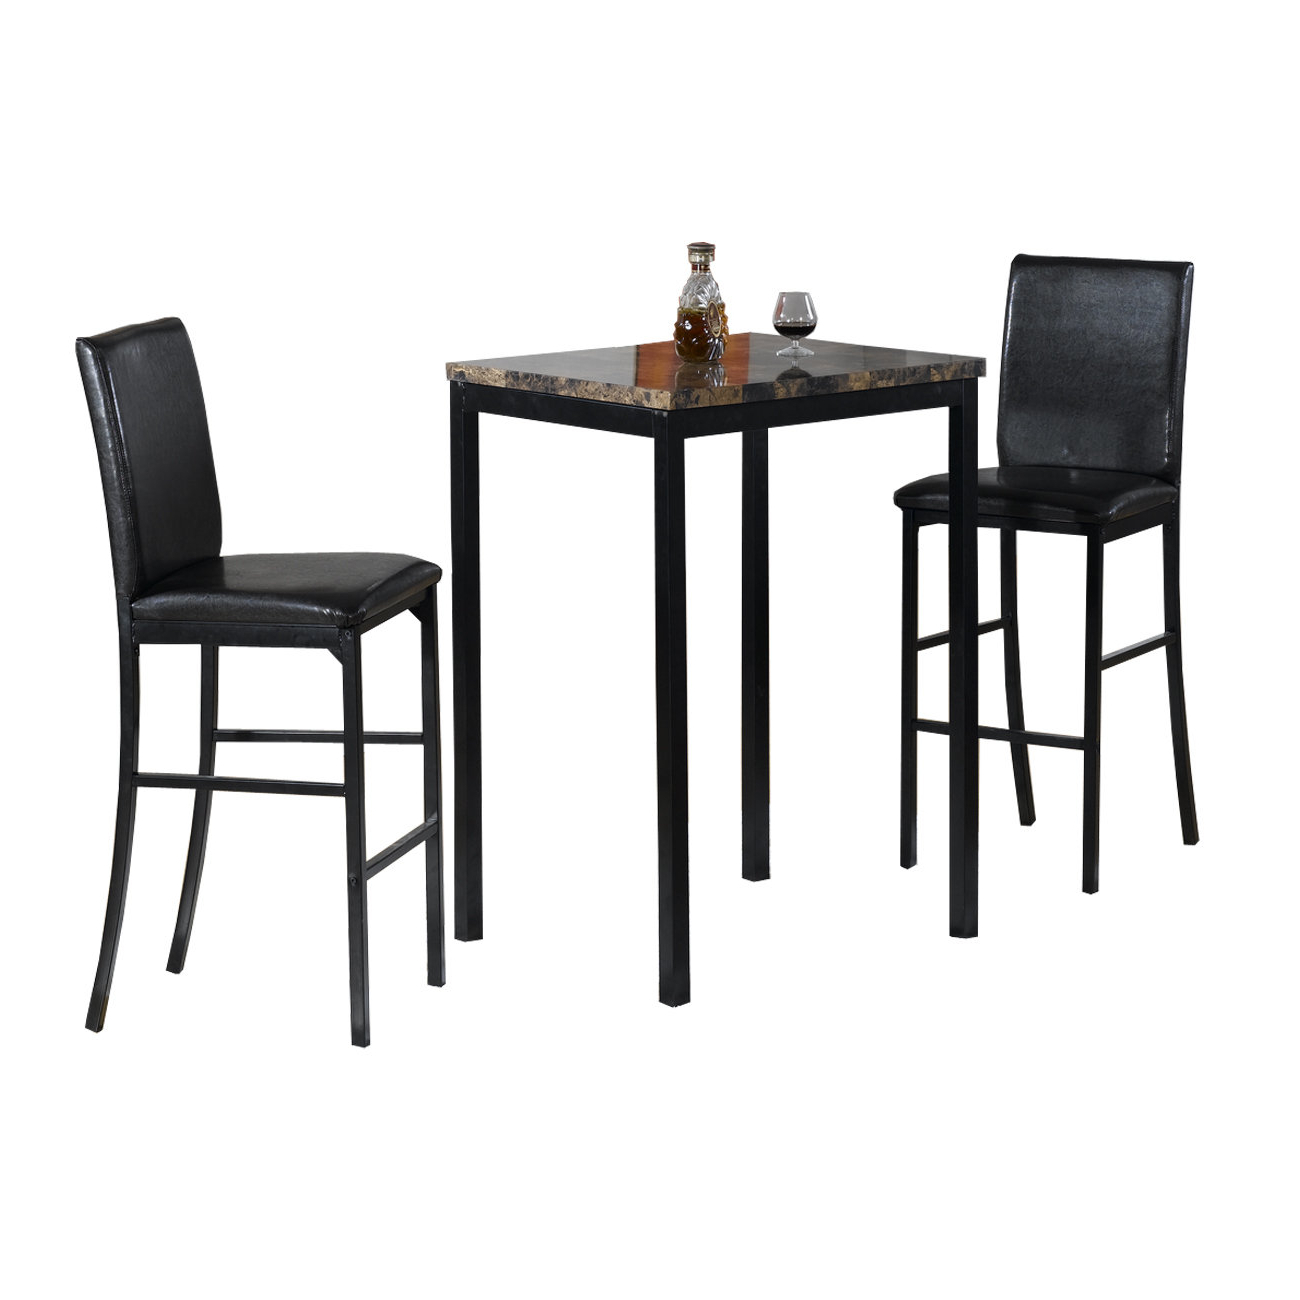 Anette 3 Piece Counter Height Dining Sets For 2020 Hazelwood Home Della 3 Piece Bistro Pub Table Set & Reviews (View 3 of 25)